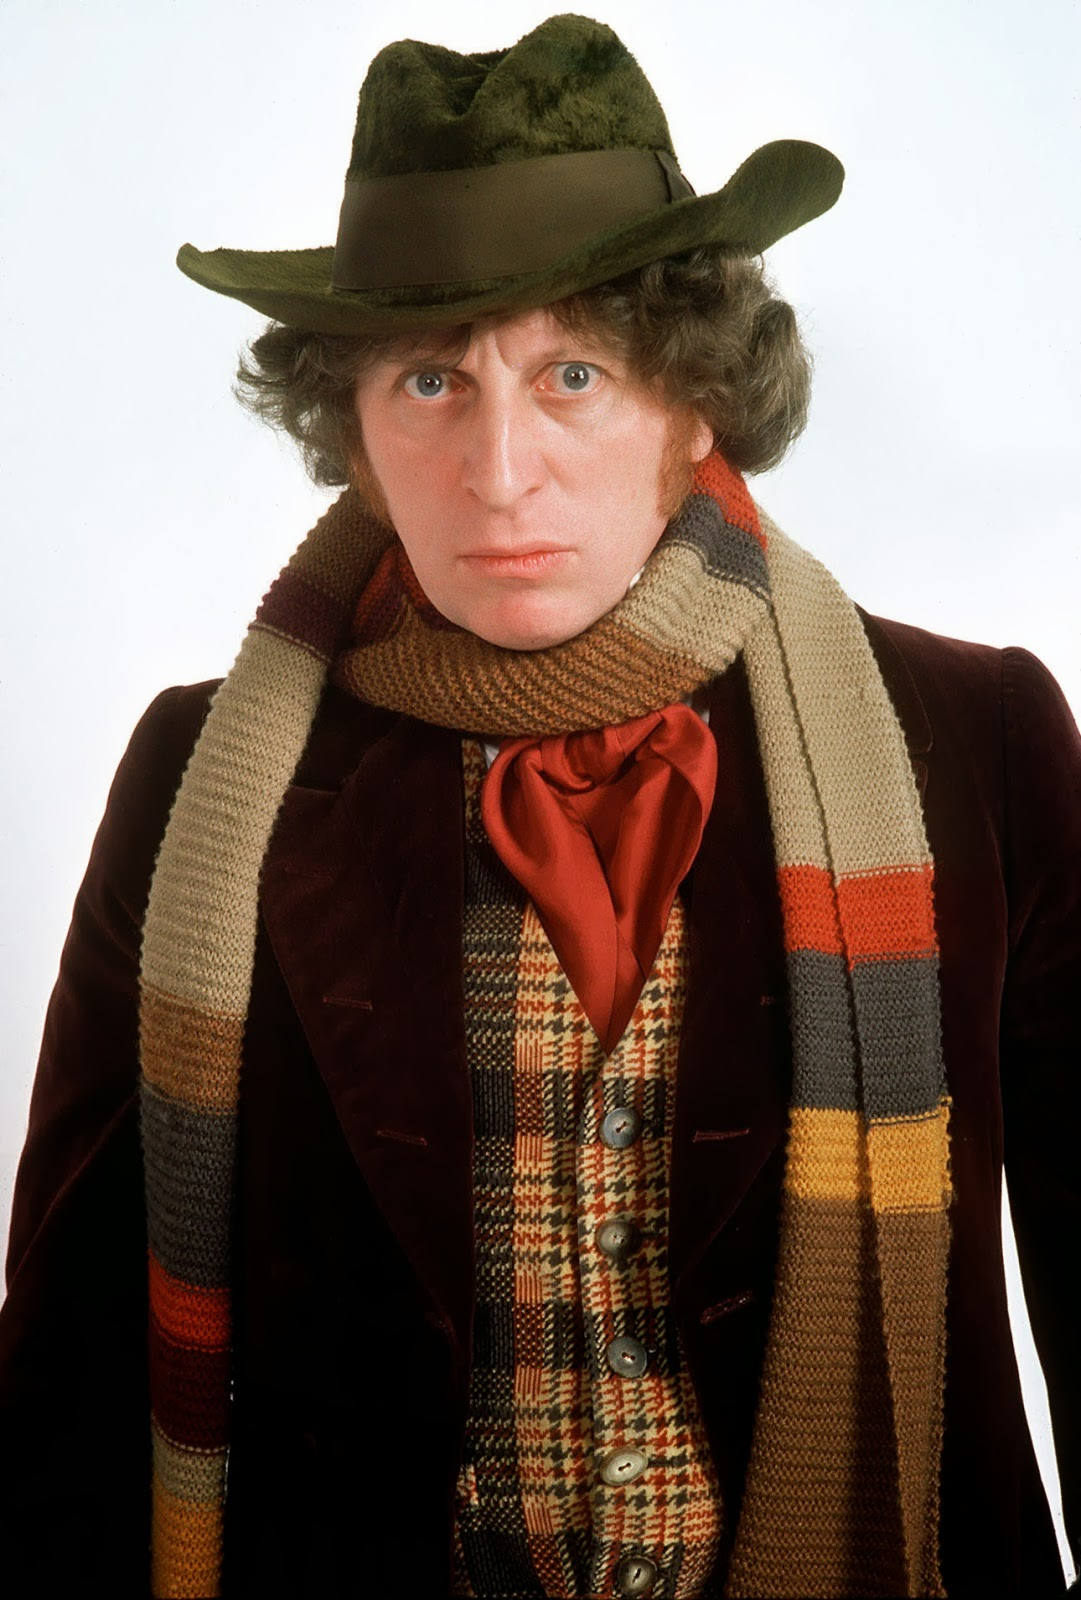 Tom Baker as the Fourth Doctor with his Scarf